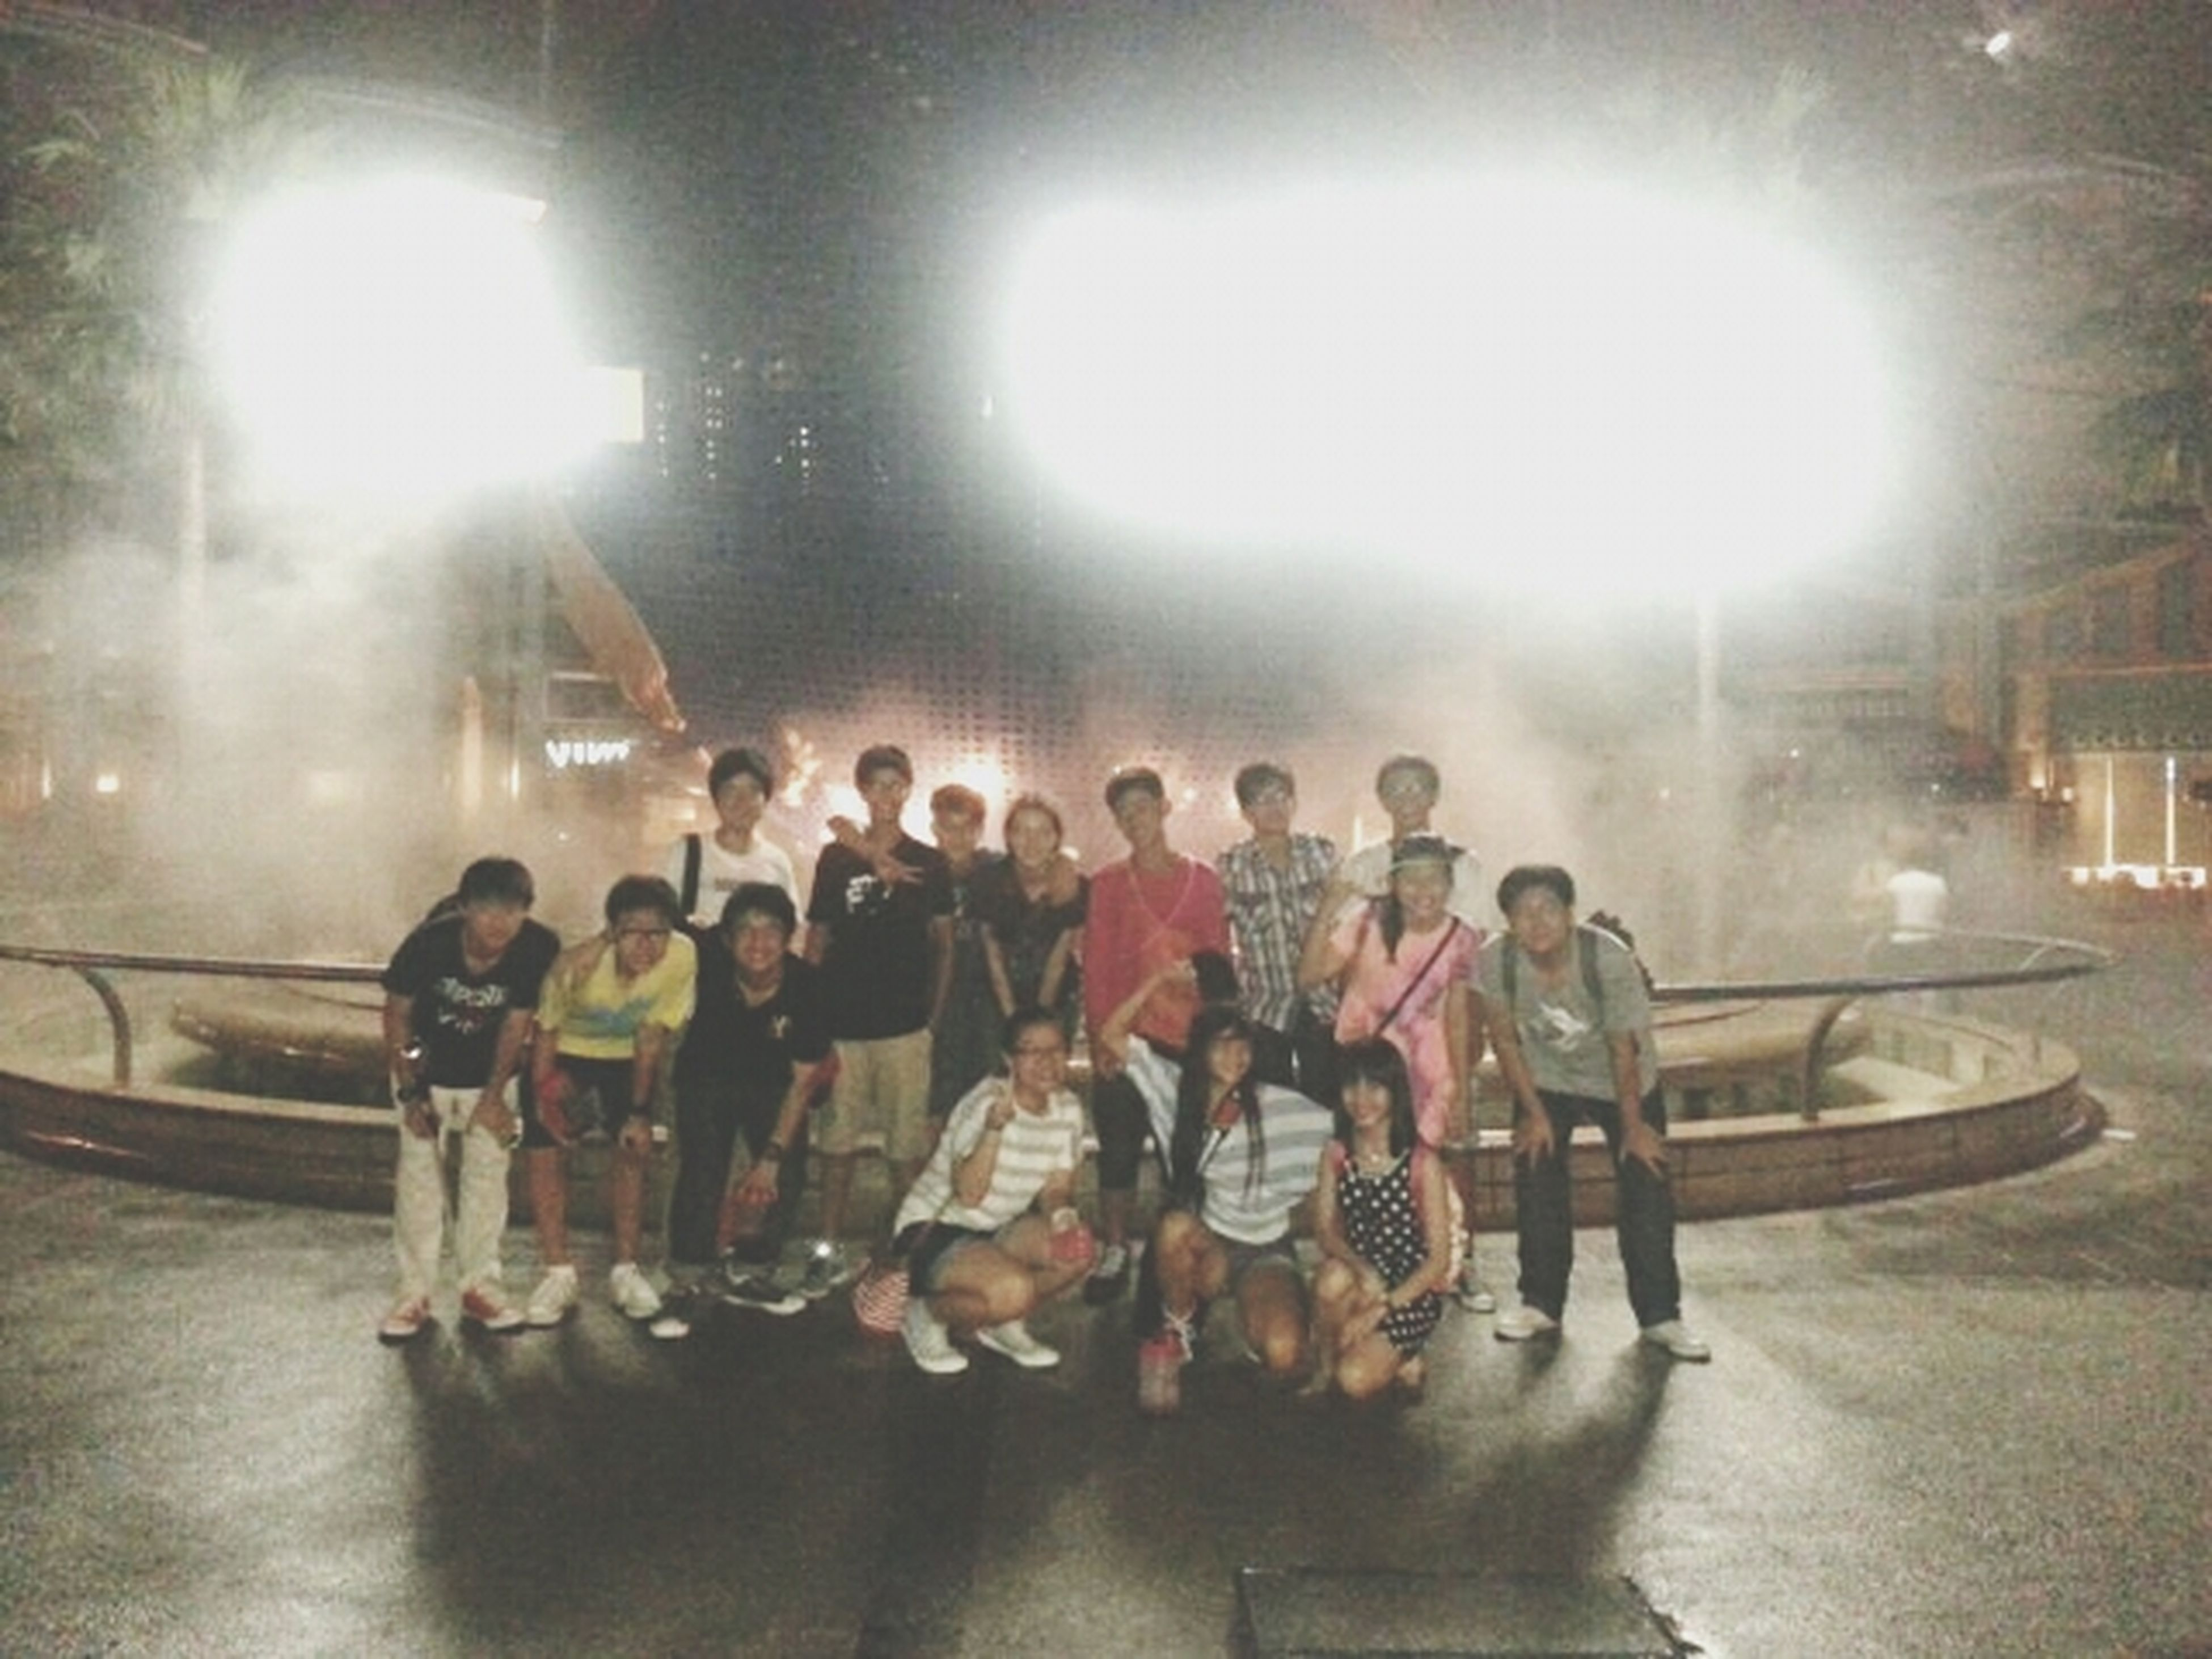 lifestyles, men, large group of people, leisure activity, person, lens flare, transportation, illuminated, built structure, sunbeam, indoors, architecture, sun, sunlight, medium group of people, mode of transport, city life, lighting equipment, full length